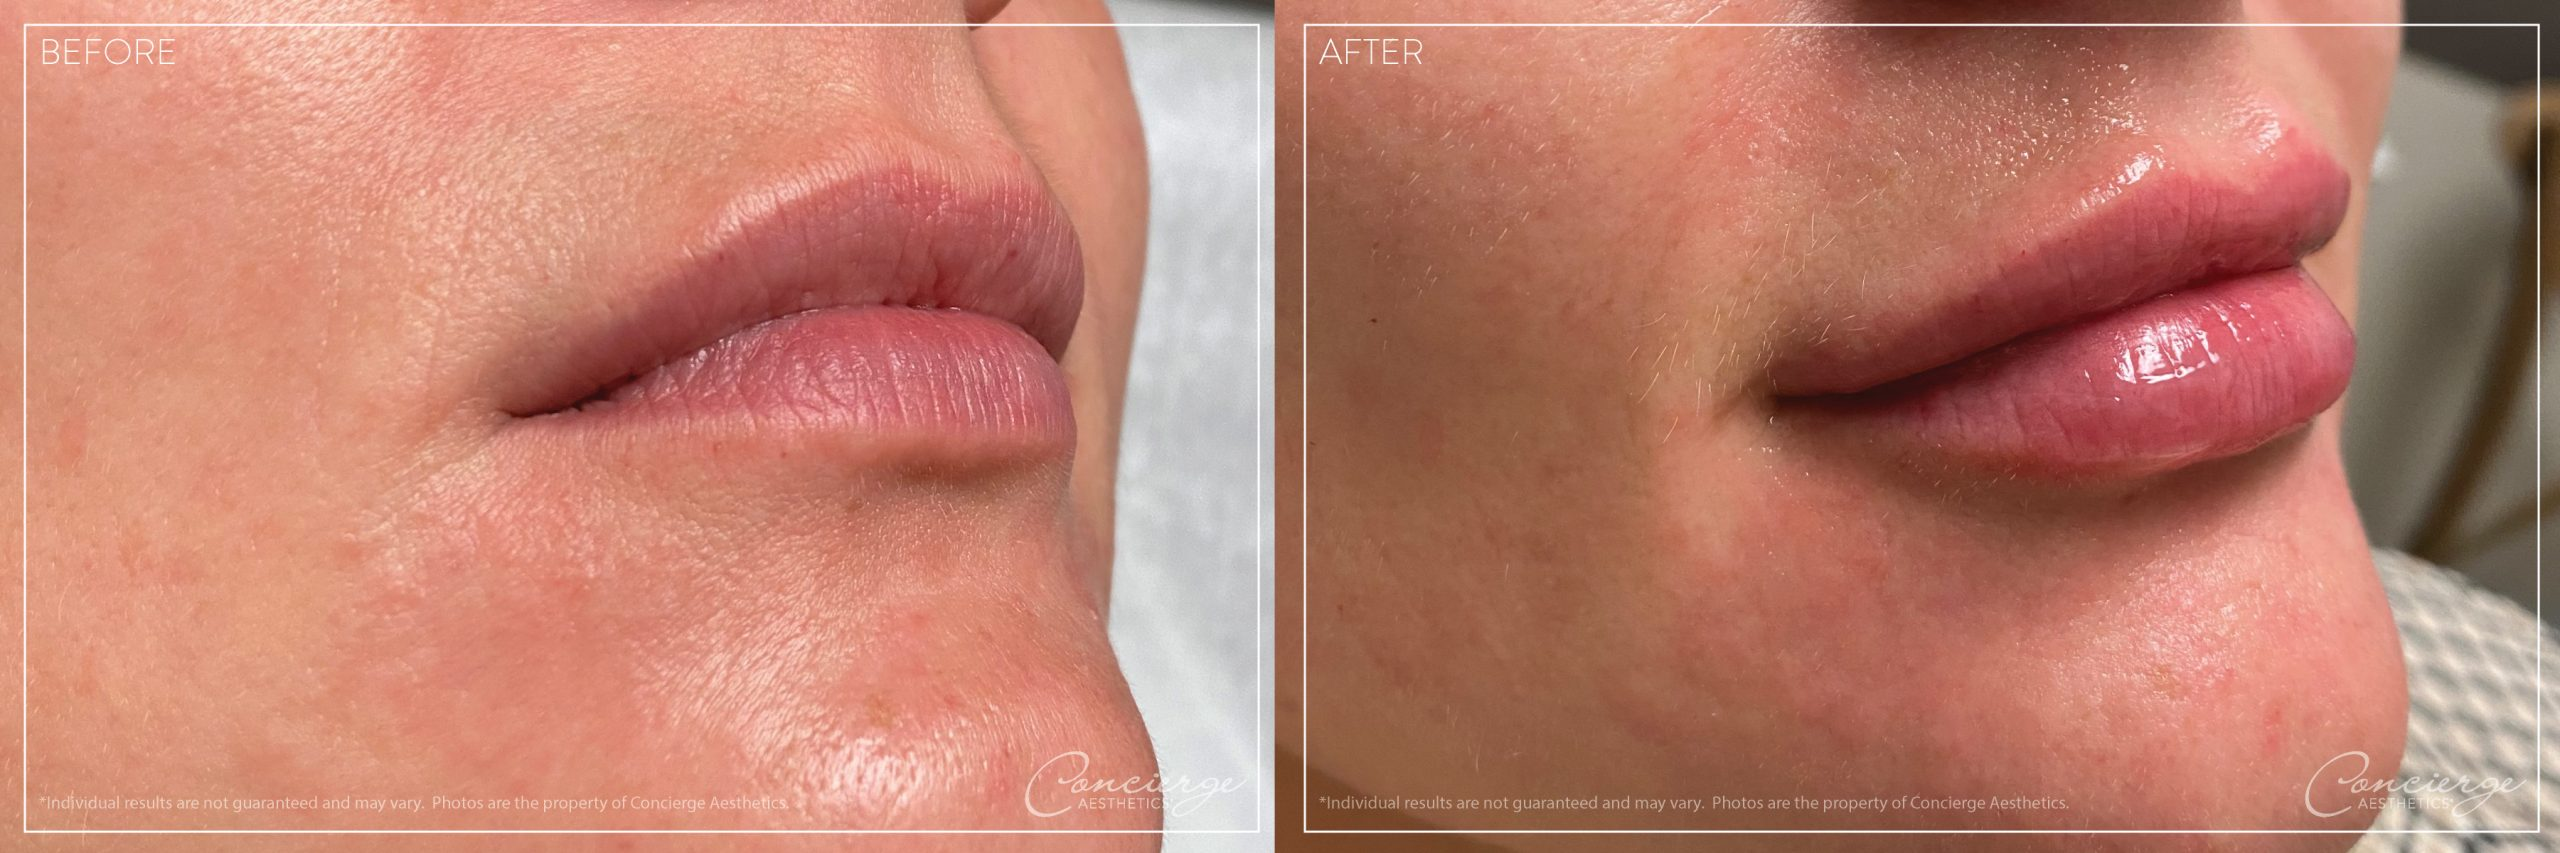 Before and After - Restylane Kysse - Concierge Aesthetics - Irvine (Orange County)